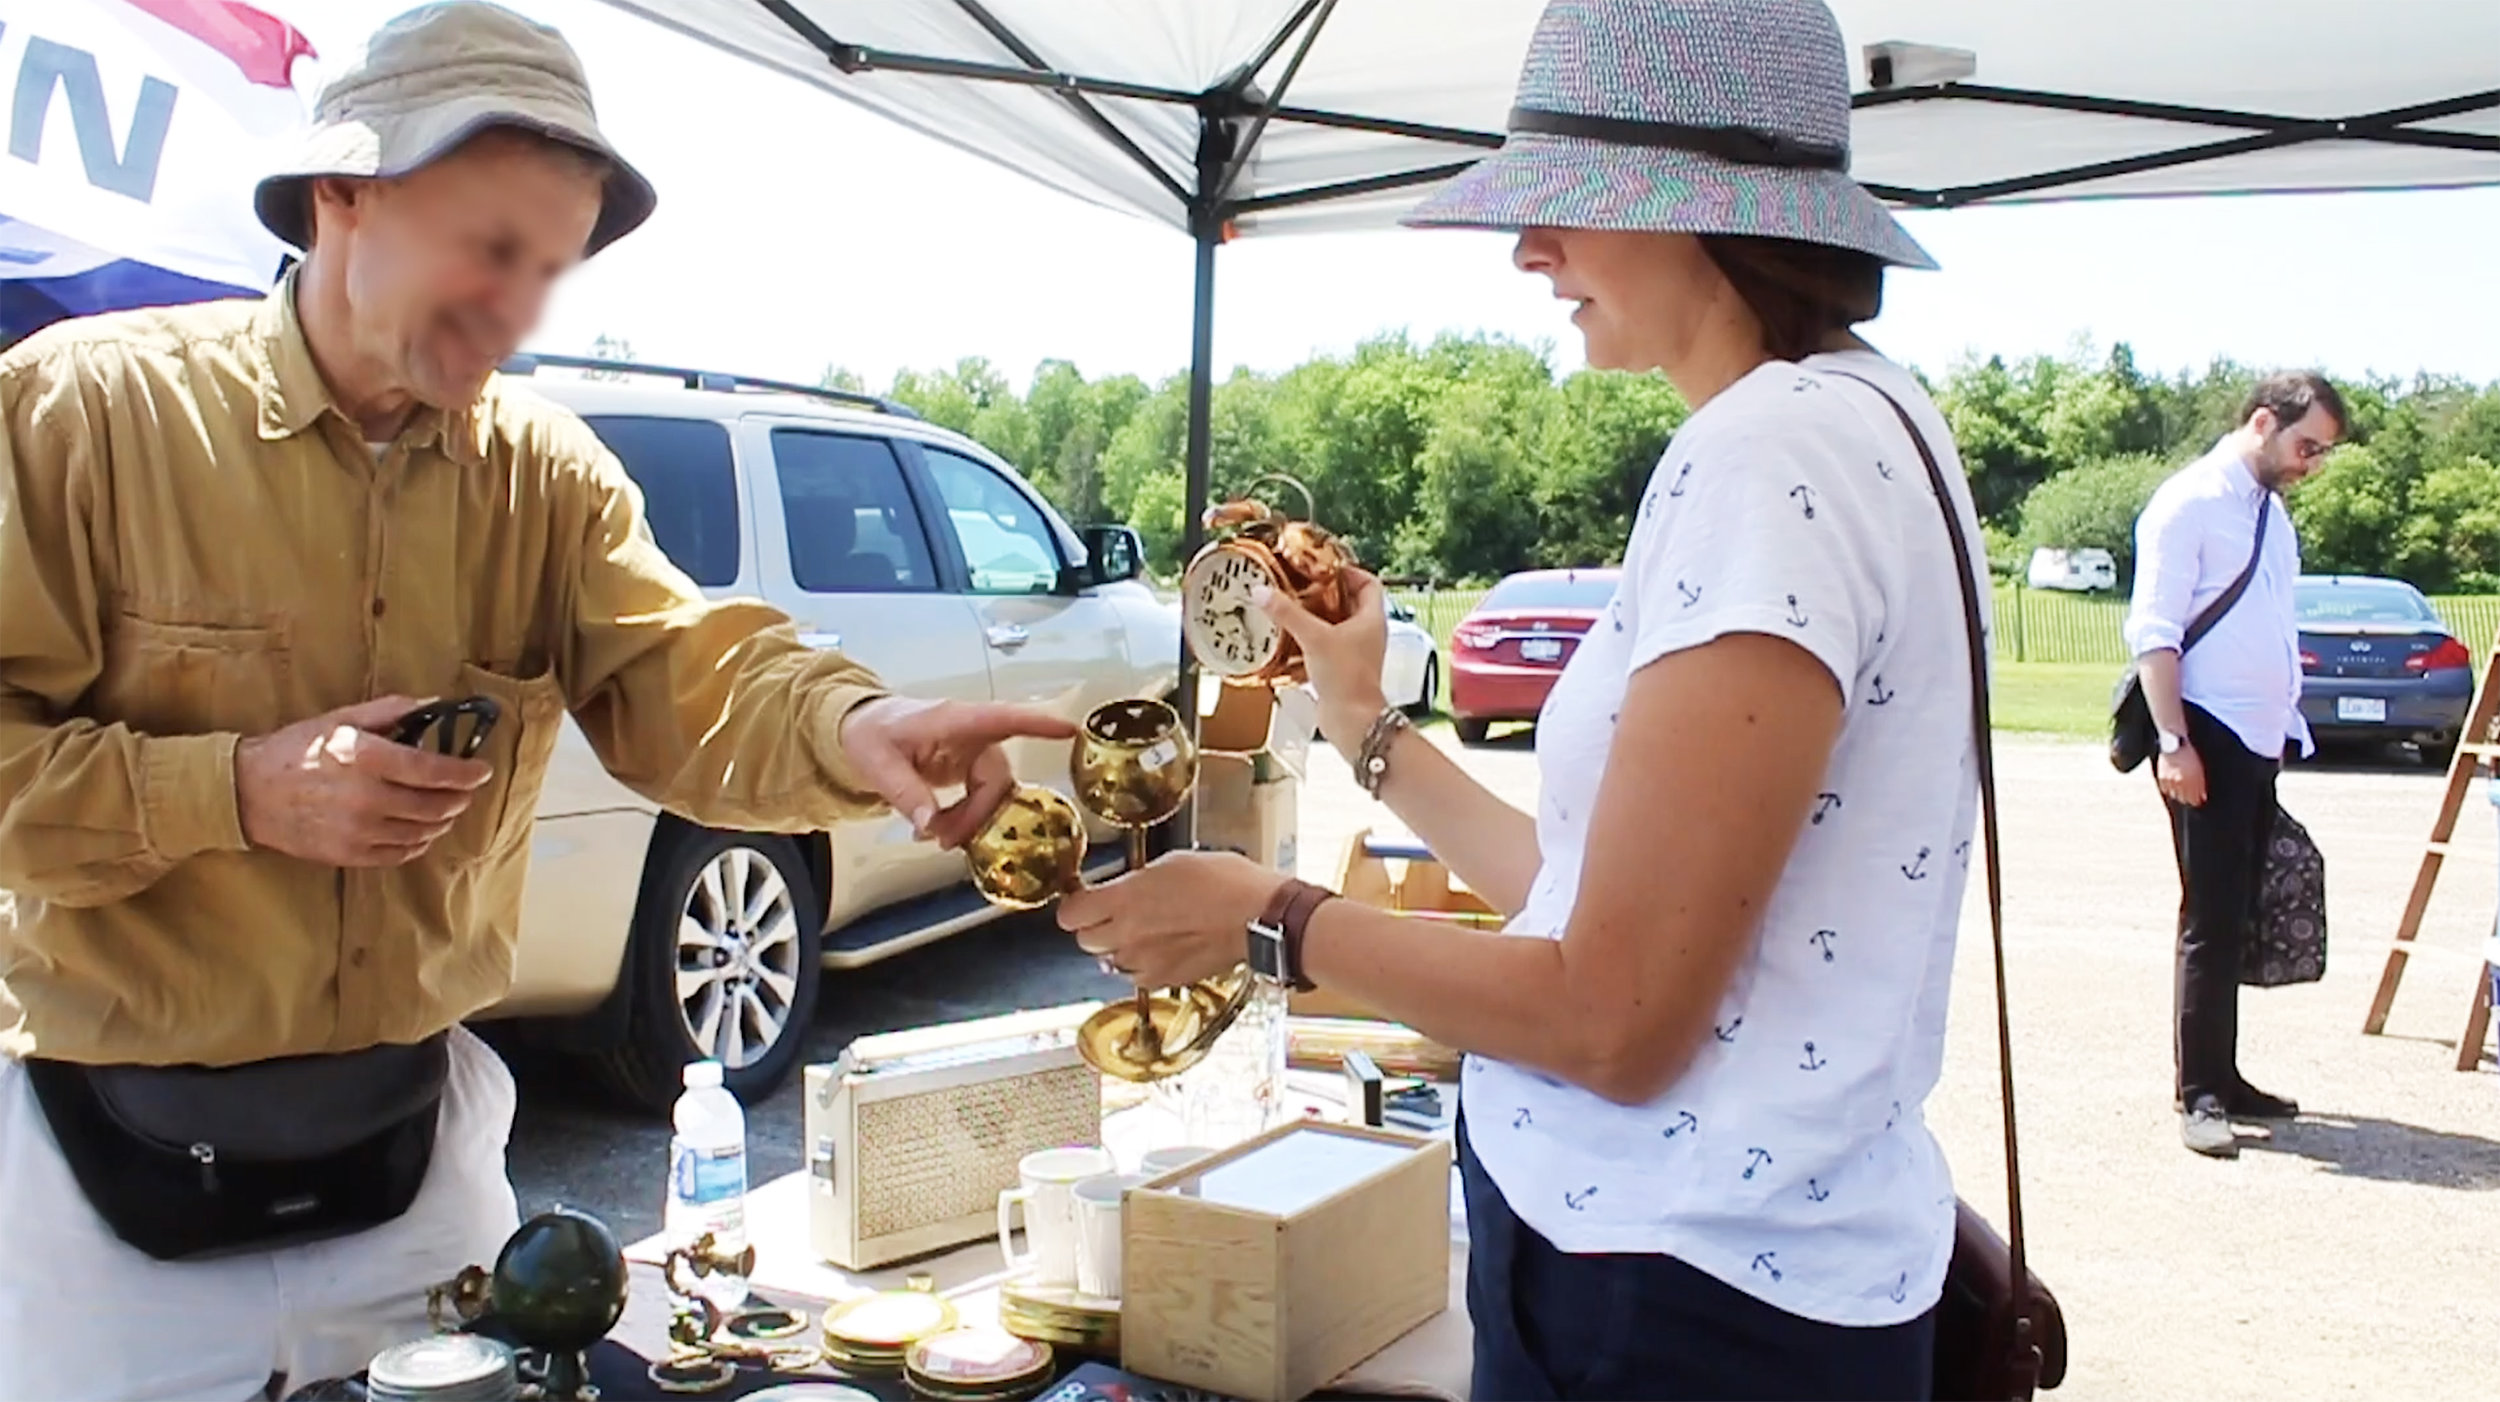 How to shop antique markets - negotiate prices